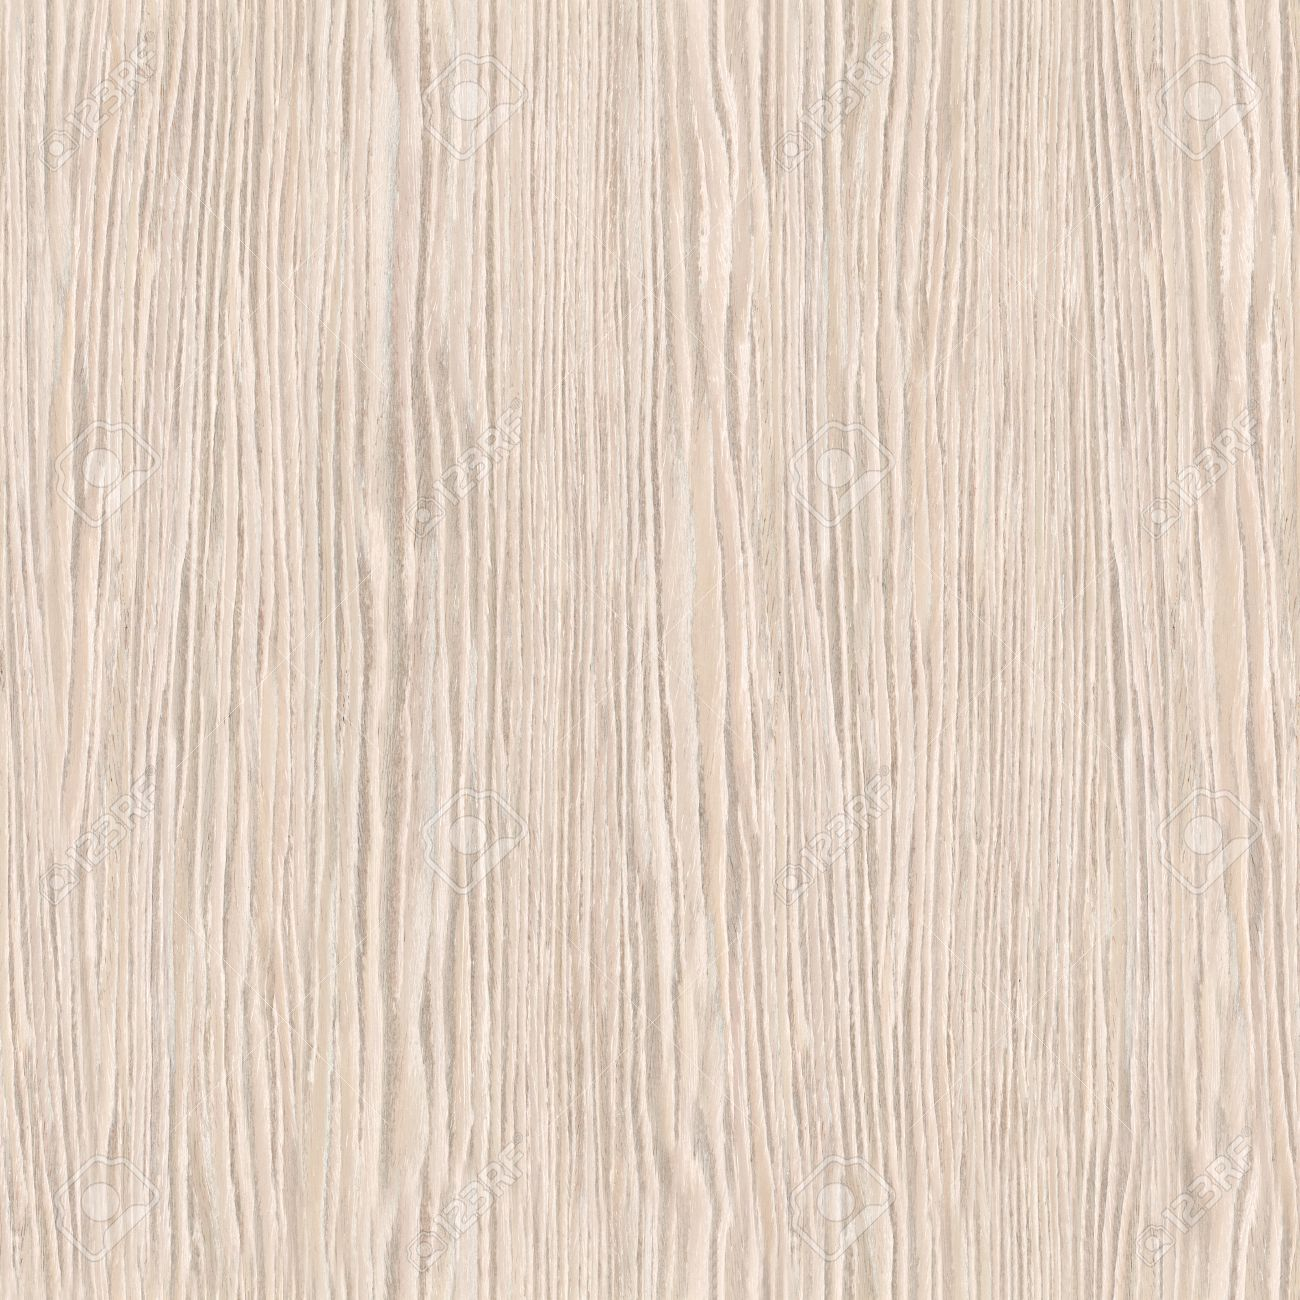 wooden board for seamless background - Light Blasted Oak Groove wood texture - 40884664